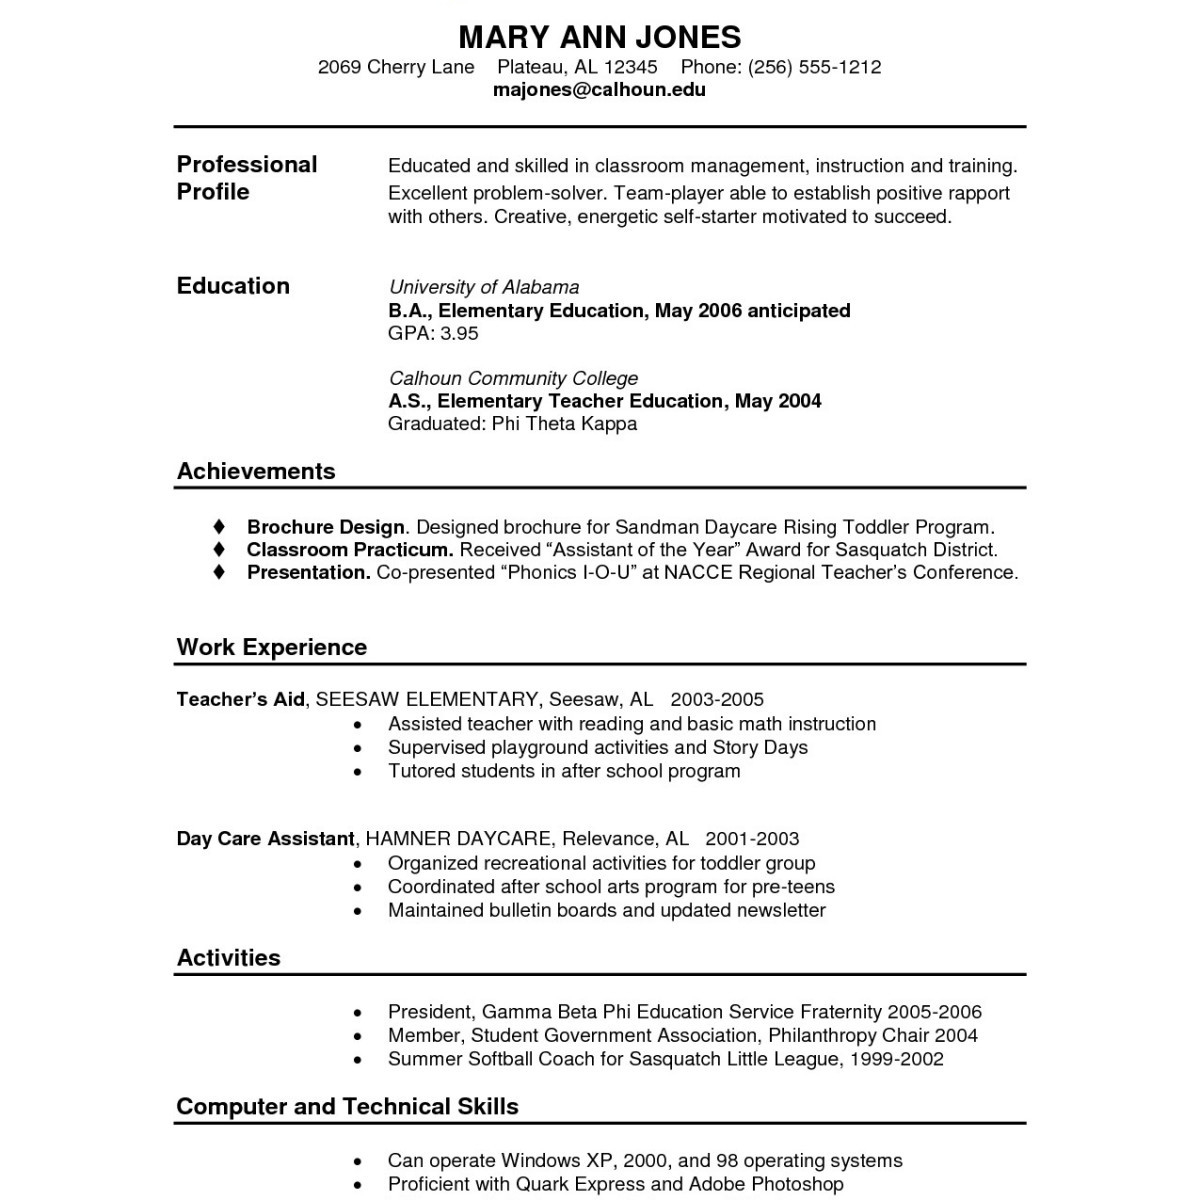 Functional Resume Template Pdf - Functional Resume Sample Pdf Inspirational Fresh Resume Examples Pdf